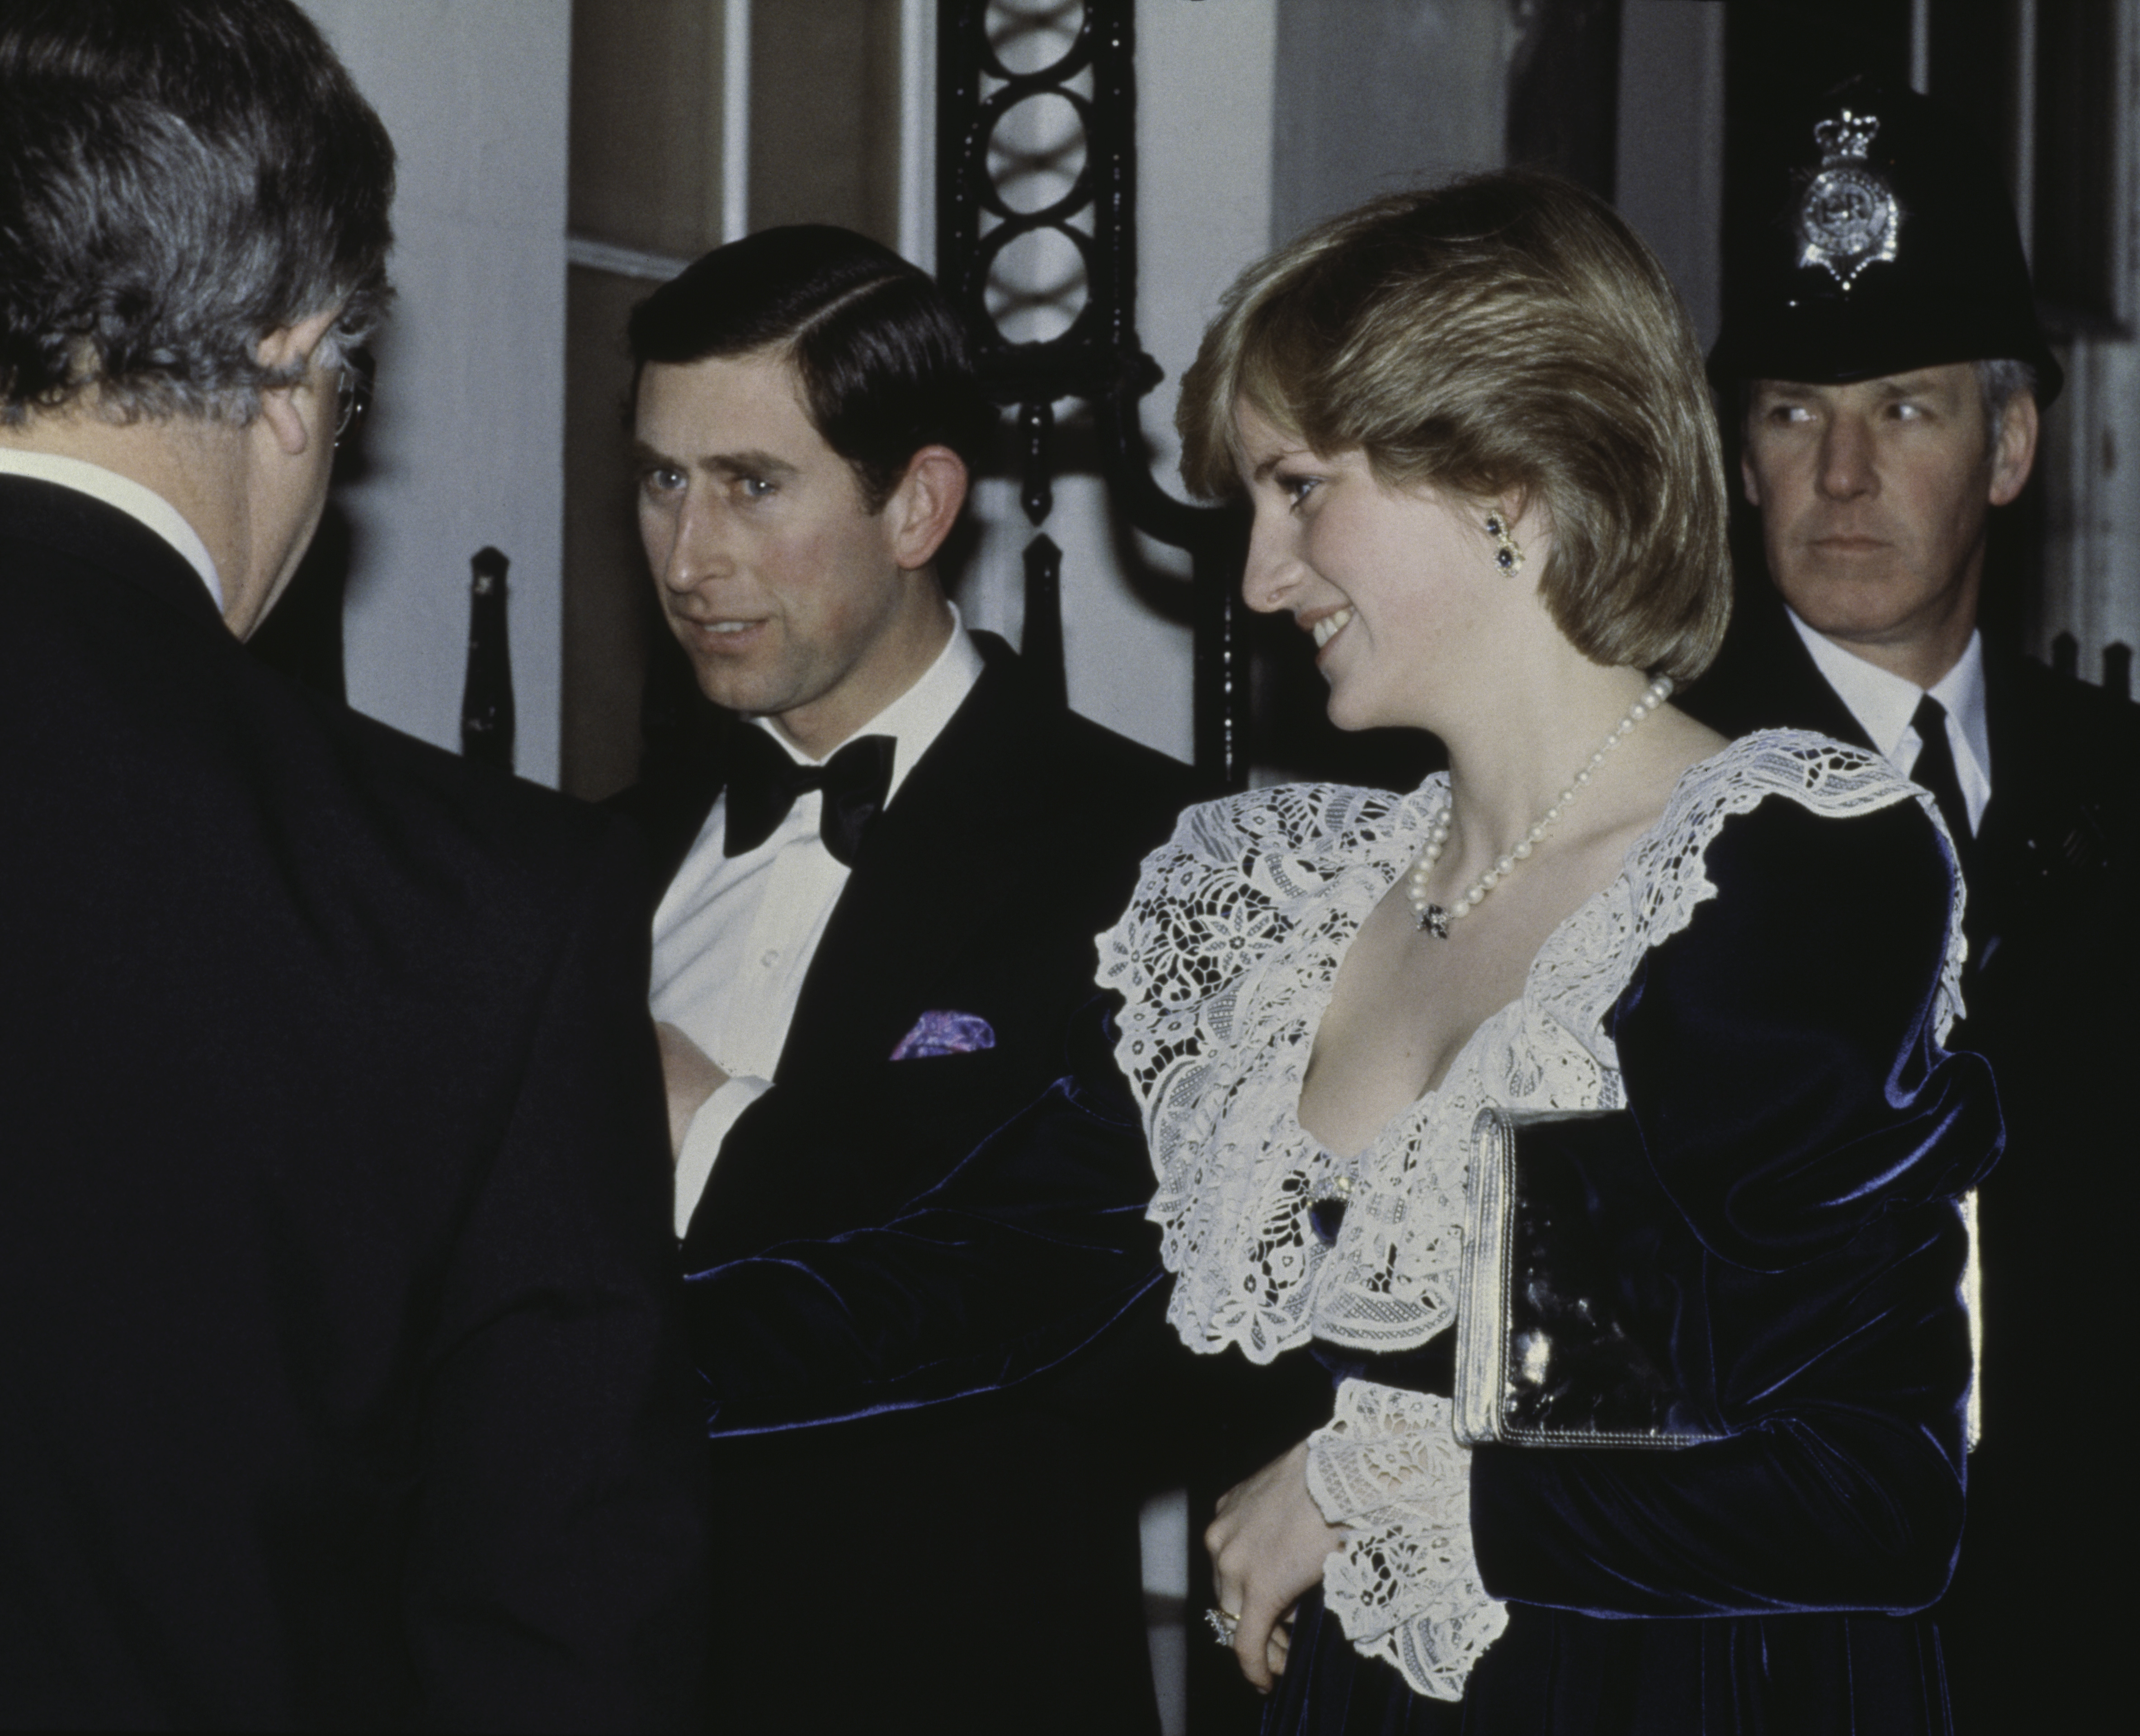 Prince Charles and the Princess of Wales (1961 - 1997, later Diana, Princess of Wales) arrive for a British Film Institute dinner at 11 Downing Street, the official residence of the Chancellor of the Exchequer, 2nd February 1982. Diana wears a lace and velvet gown by Bellville Sassoon. (Photo by Central Press/Hulton Archive/Getty Images)